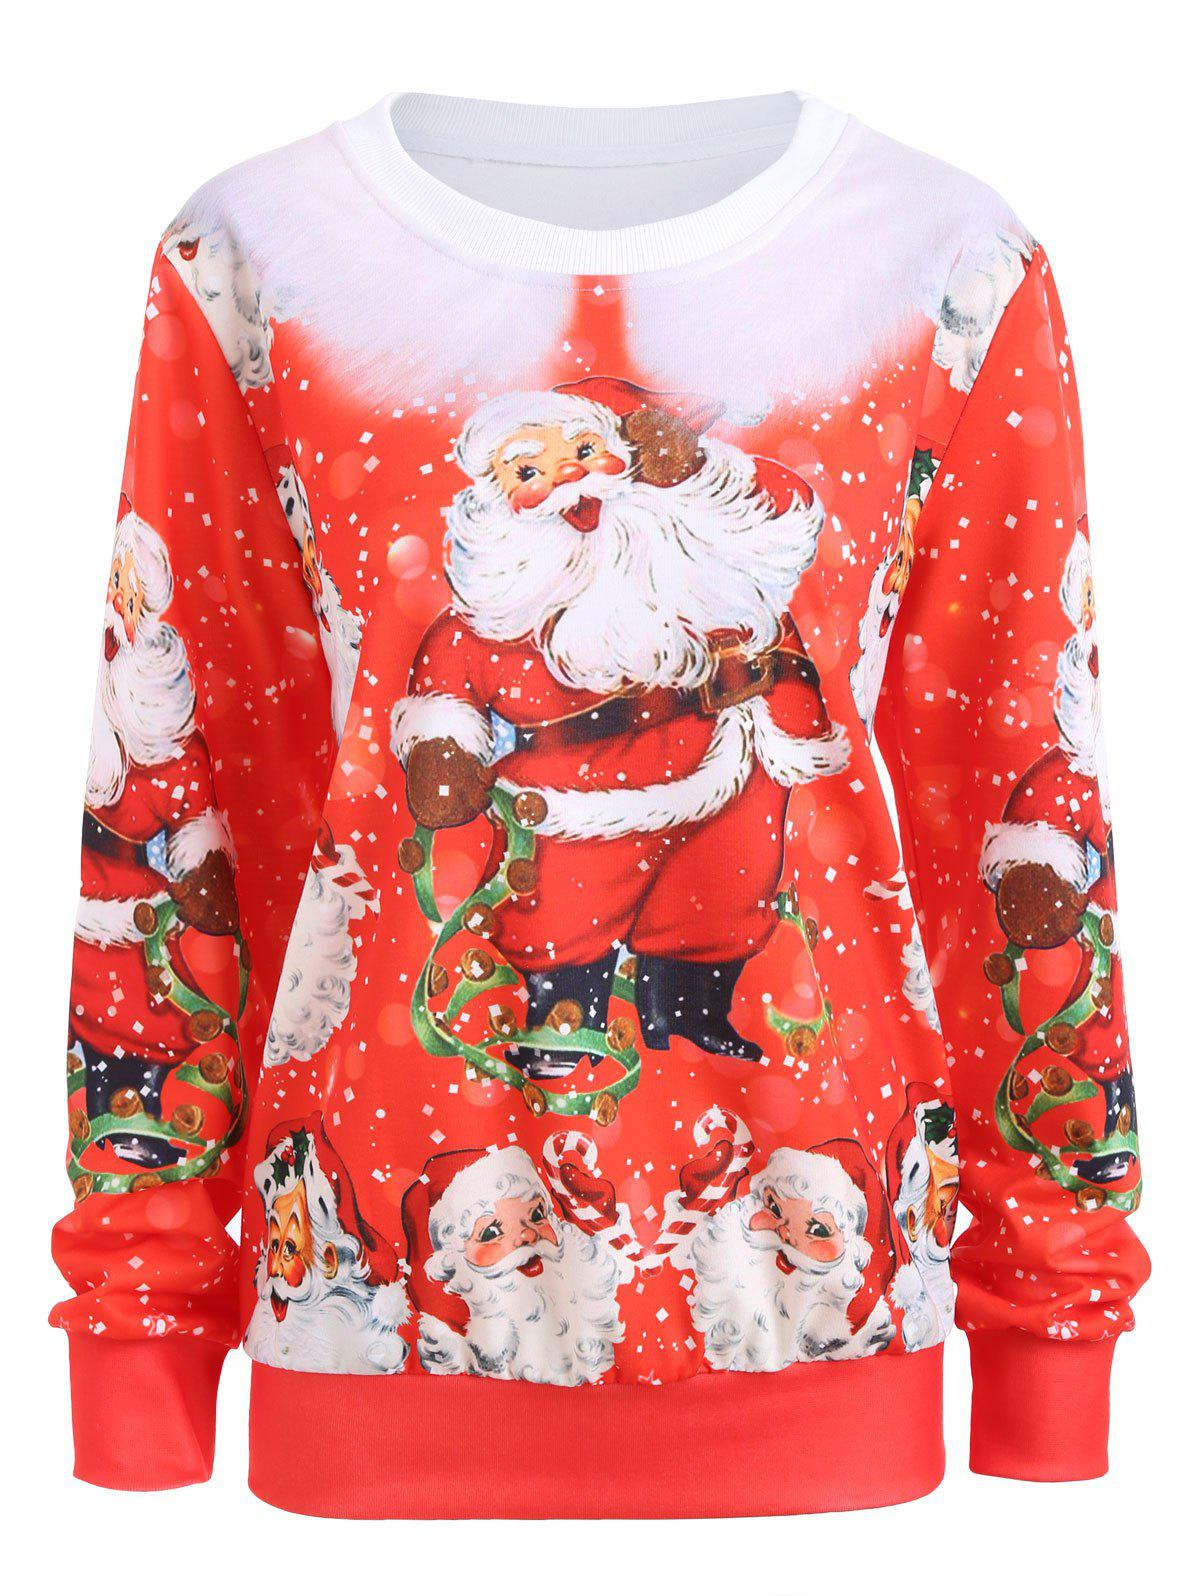 Santa Claus Merry Christmas Sweatshirt e0005929ryw